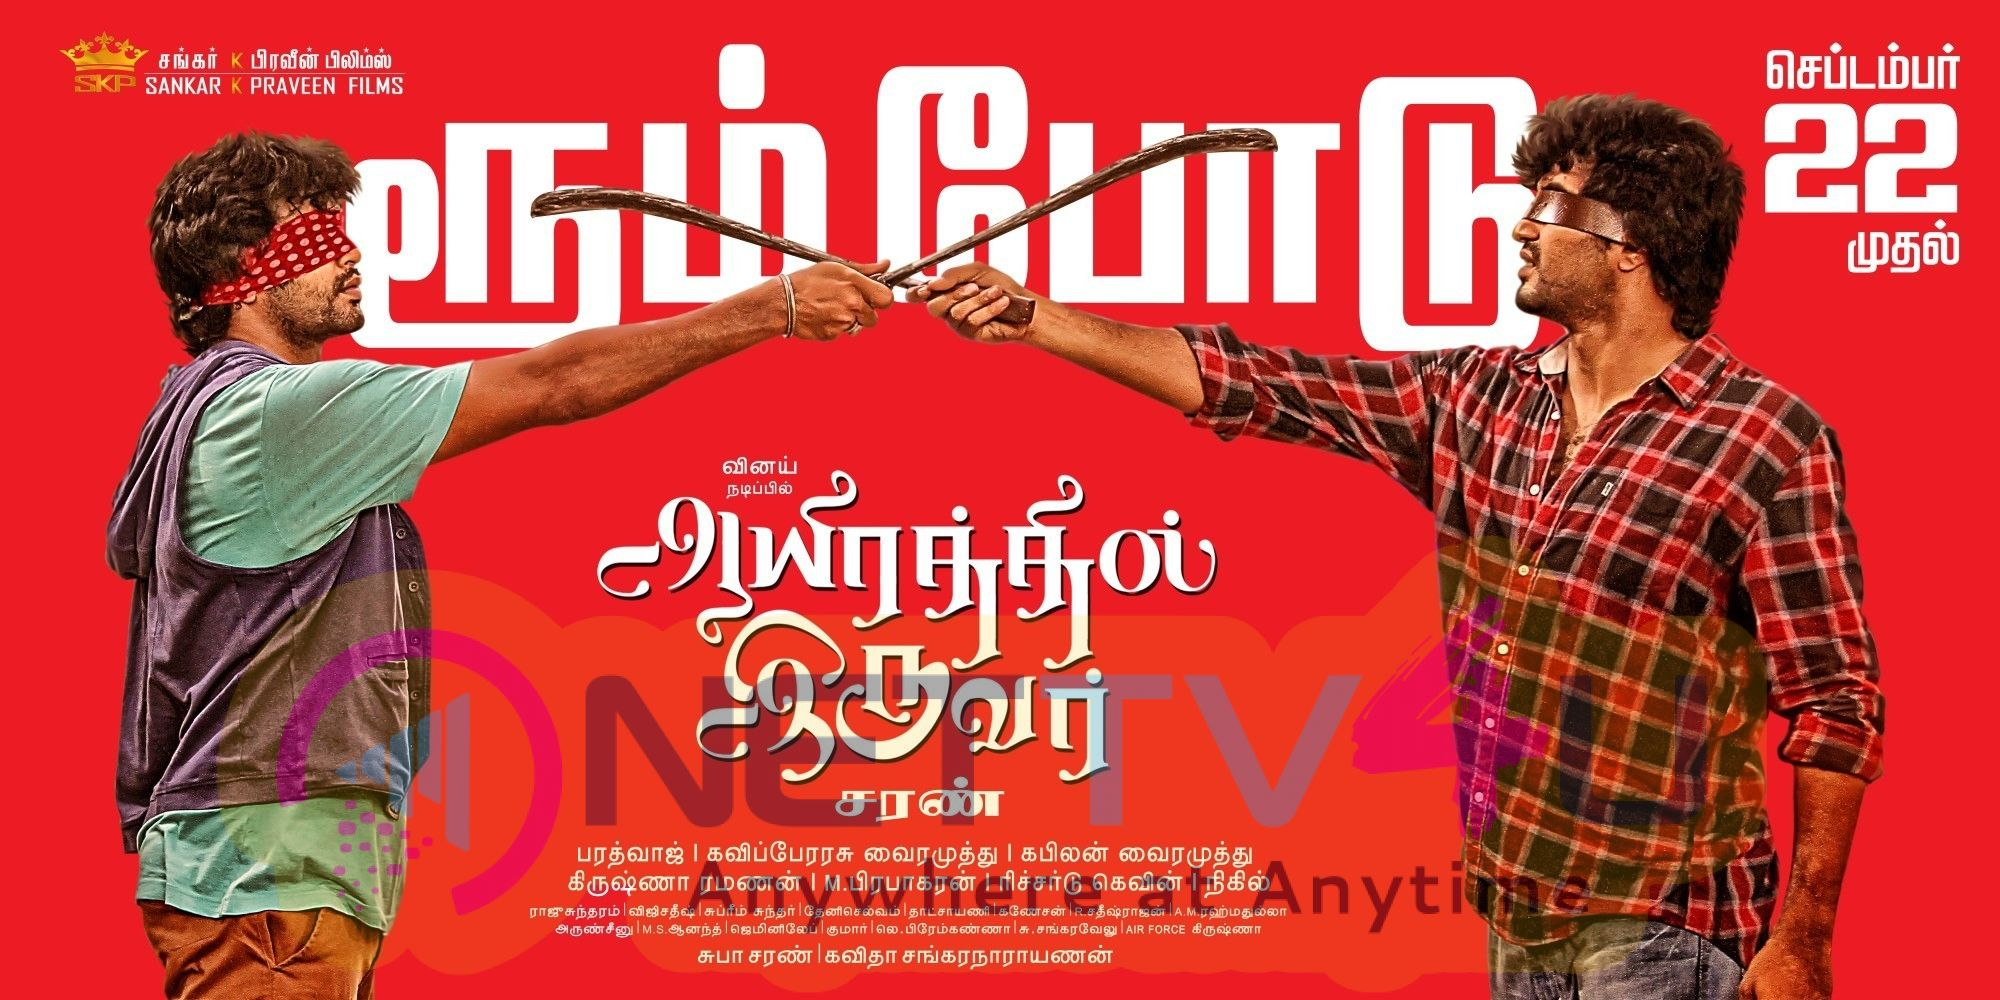 Aayirathil Iruvar Movie Releasing On September 22nd Posters